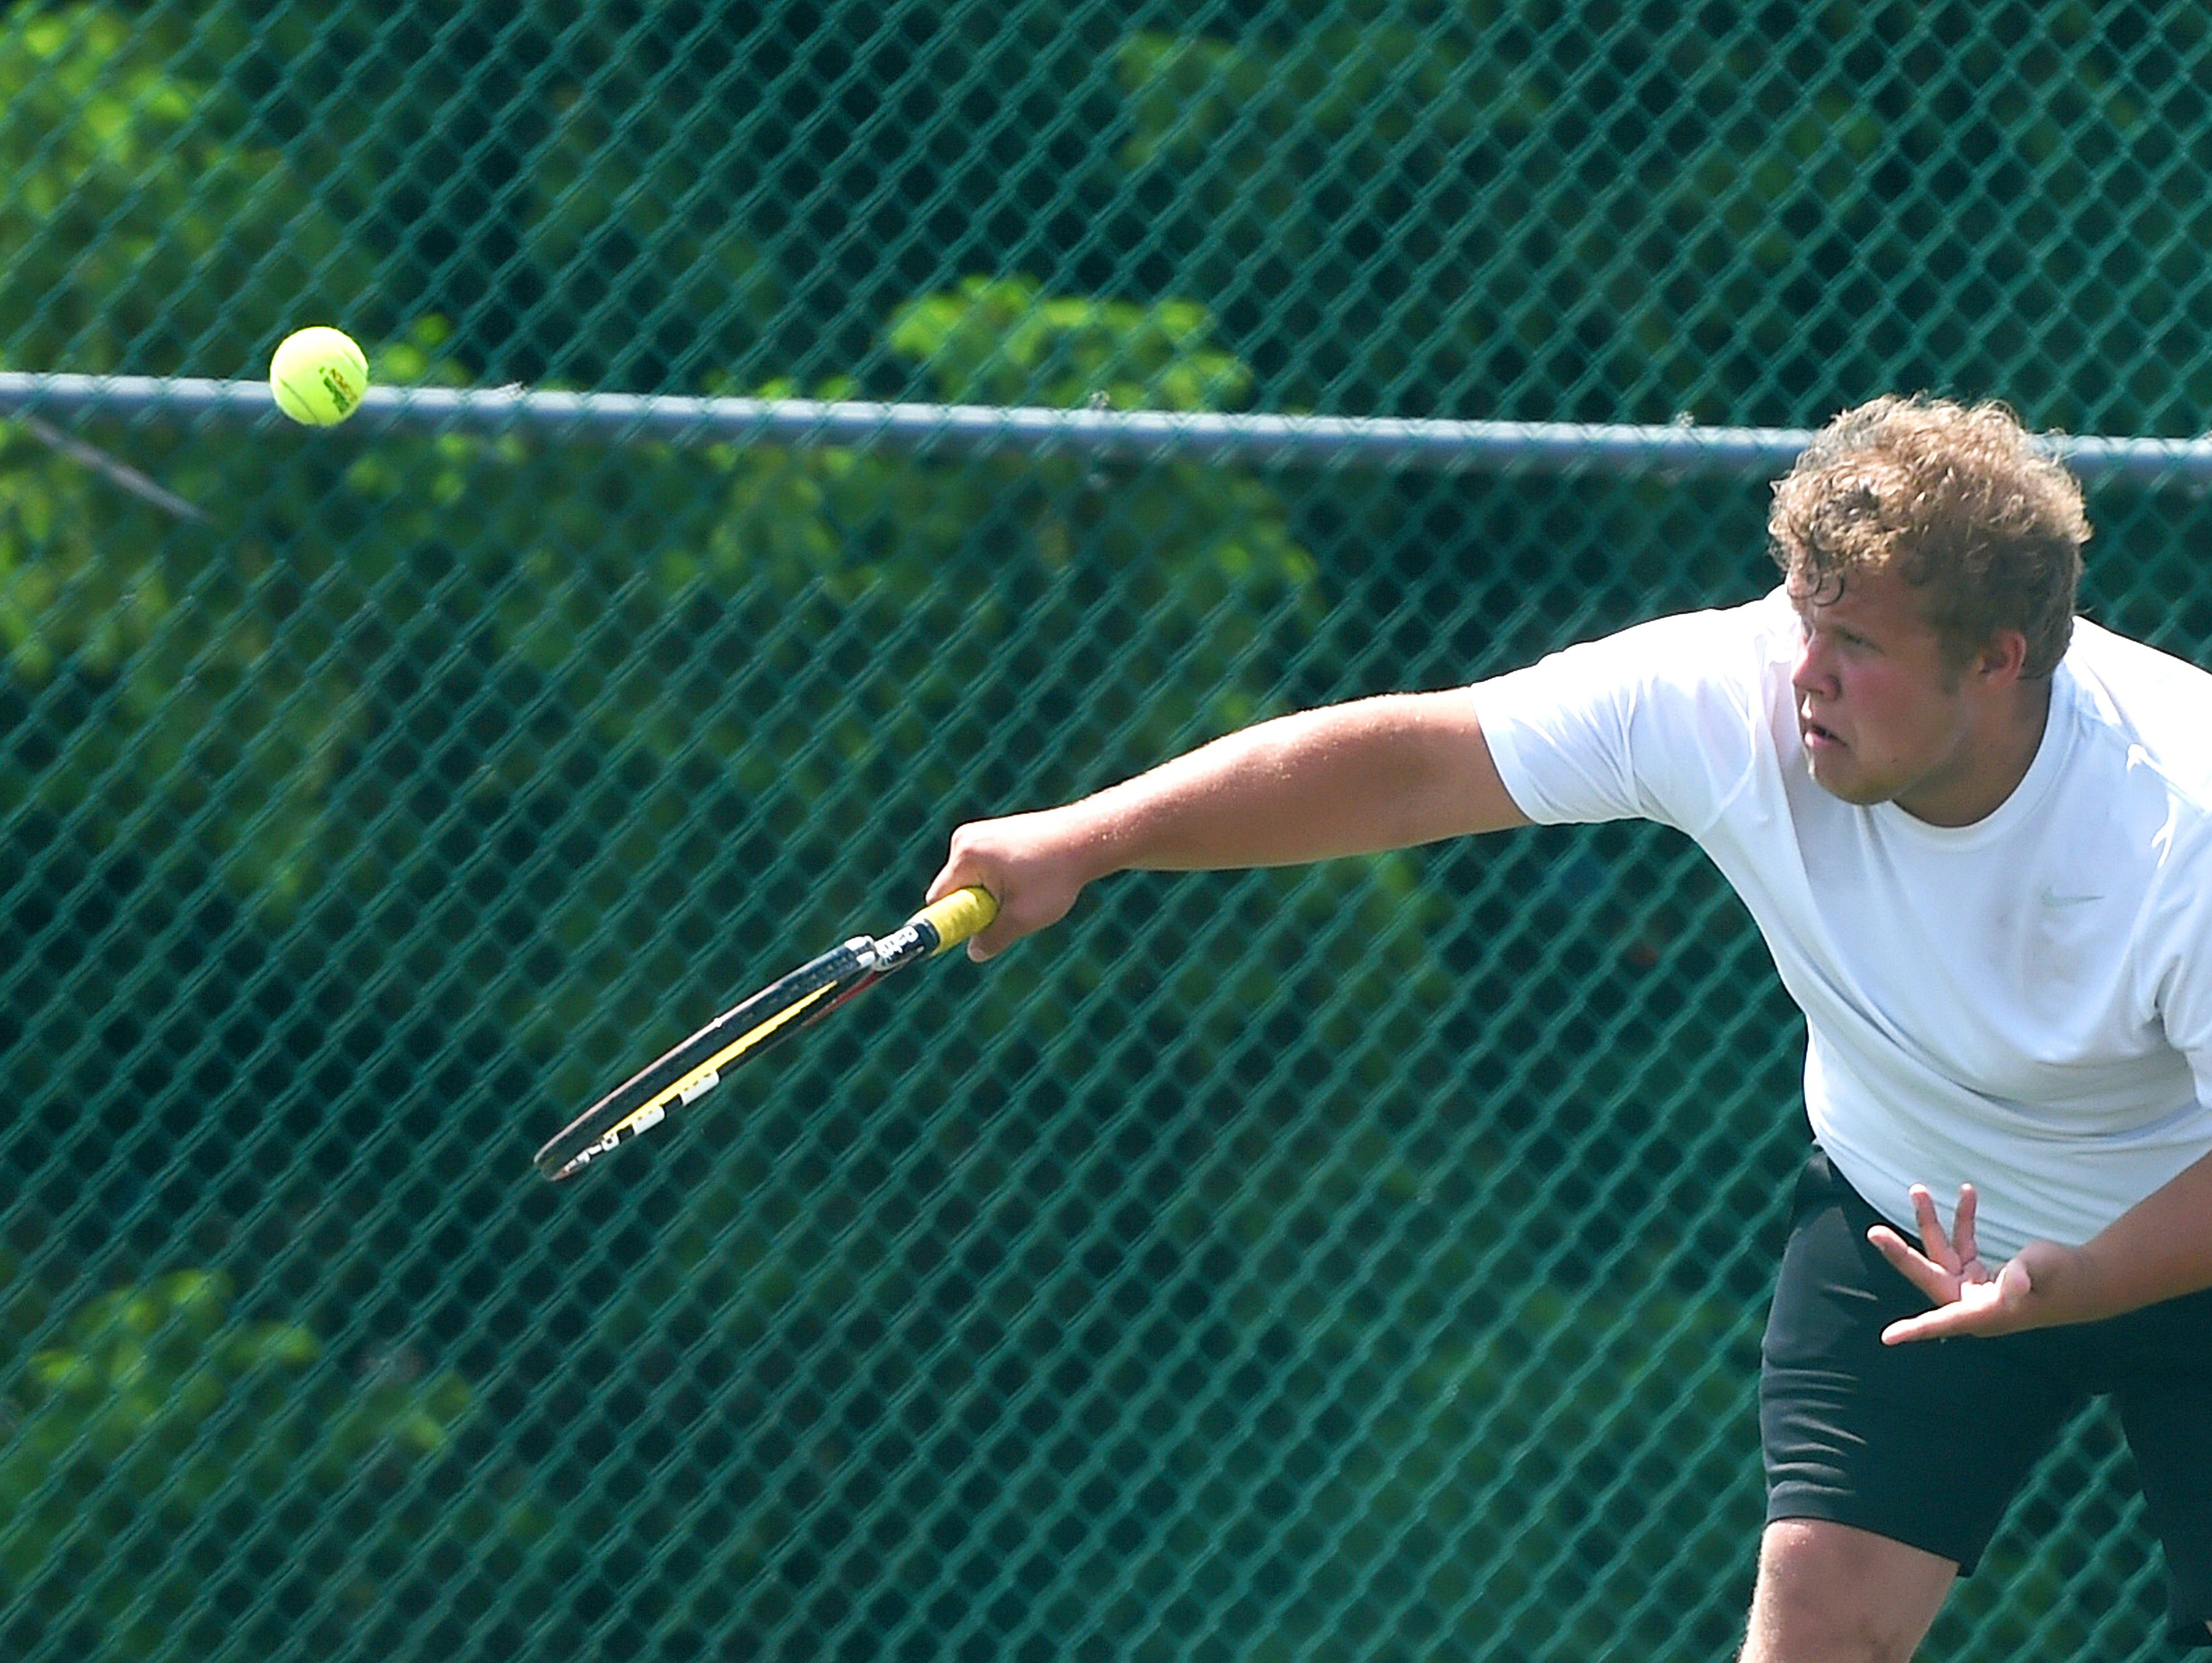 Buffalo Gap's Clay Graham serves the ball in a match against East Rockingham's Jordan Secrist during the Conference 36 tennis tournament in Fishersville on Thursday, May 13, 2016.